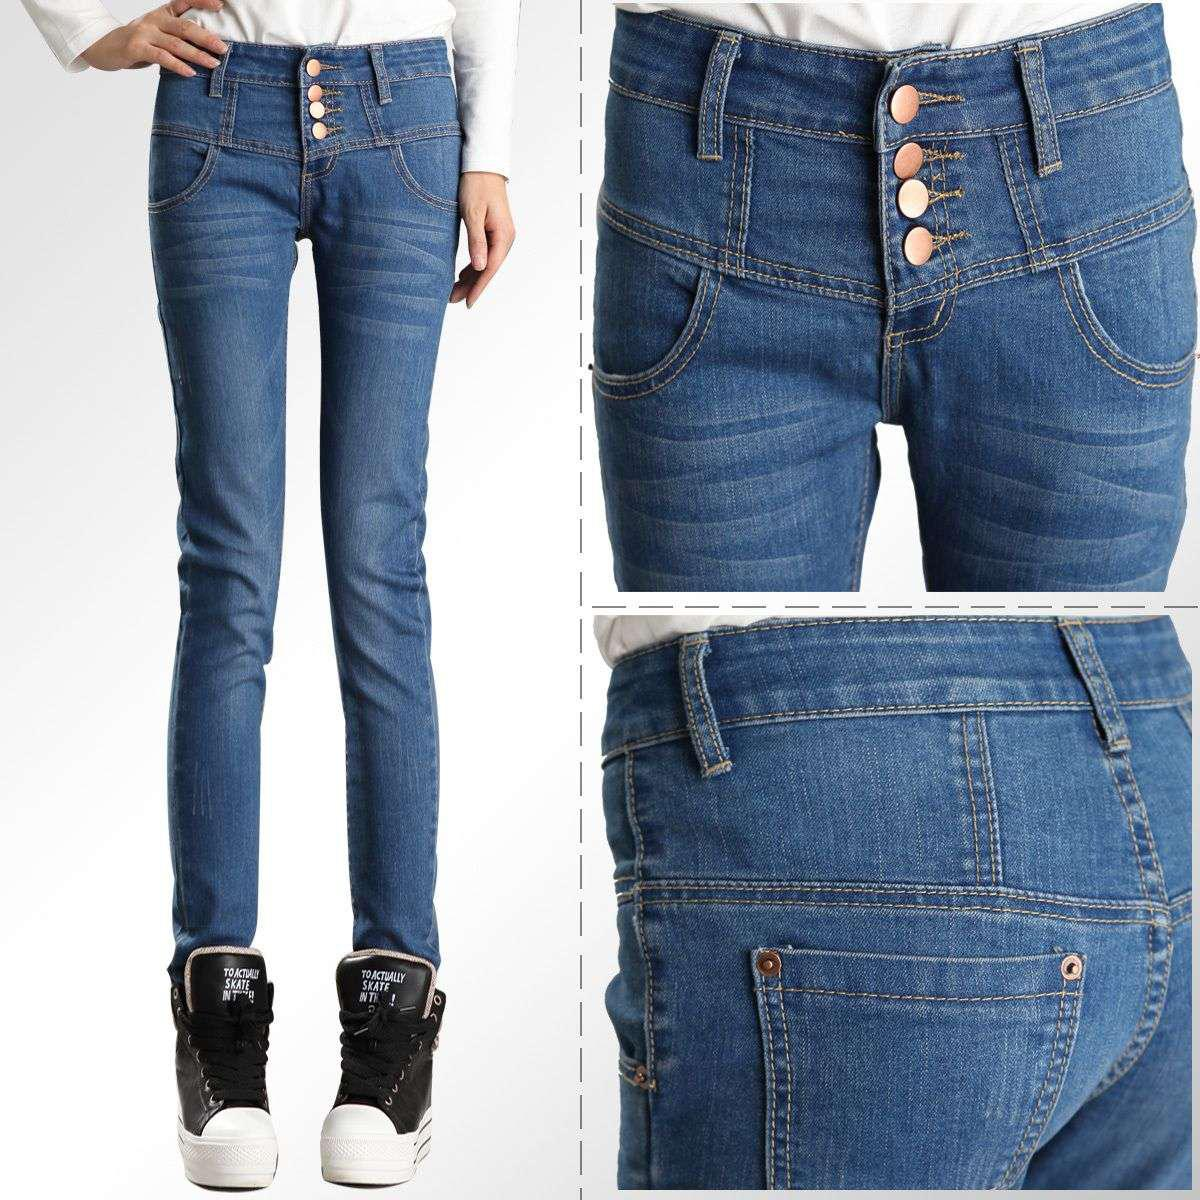 Show off those sexy curves in plus size denim at hereuloadu5.ga! We have you covered with plus size jeans and denim shorts in all the latest styles. Skip to Main Content. 26 2X 3X Color Black Blue Denim Green Red Taupe White Price $25 - $50 Clear All Filters.